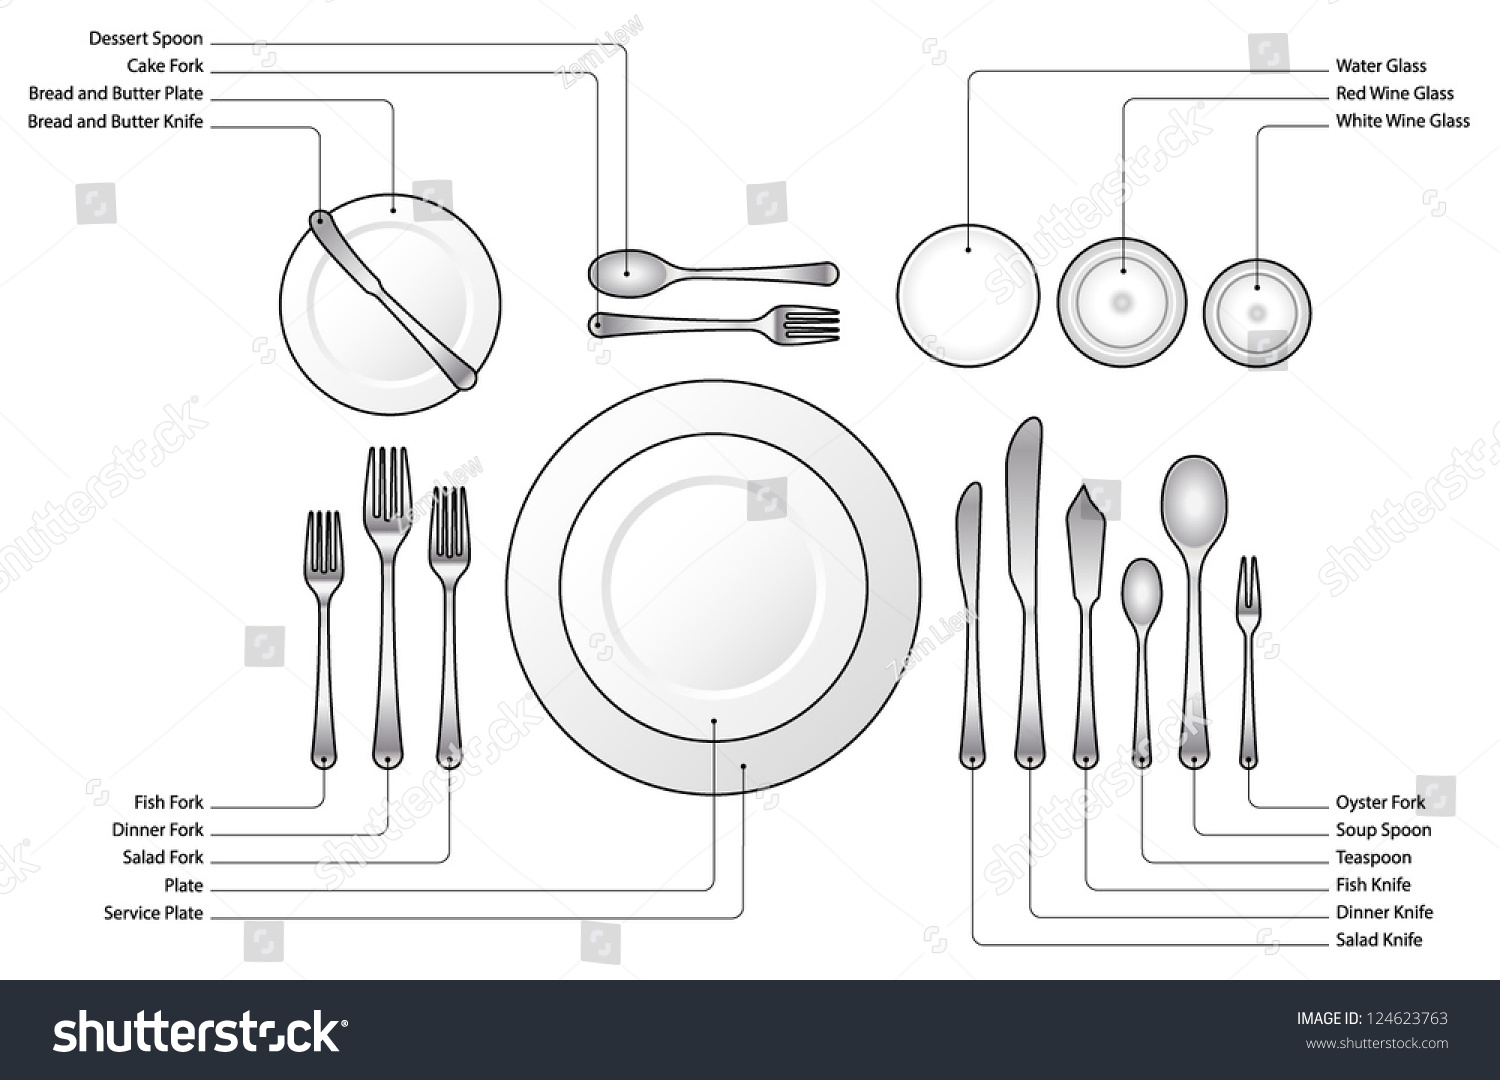 Formal Dining Place Setting Diagram - Electrical Drawing Wiring ...